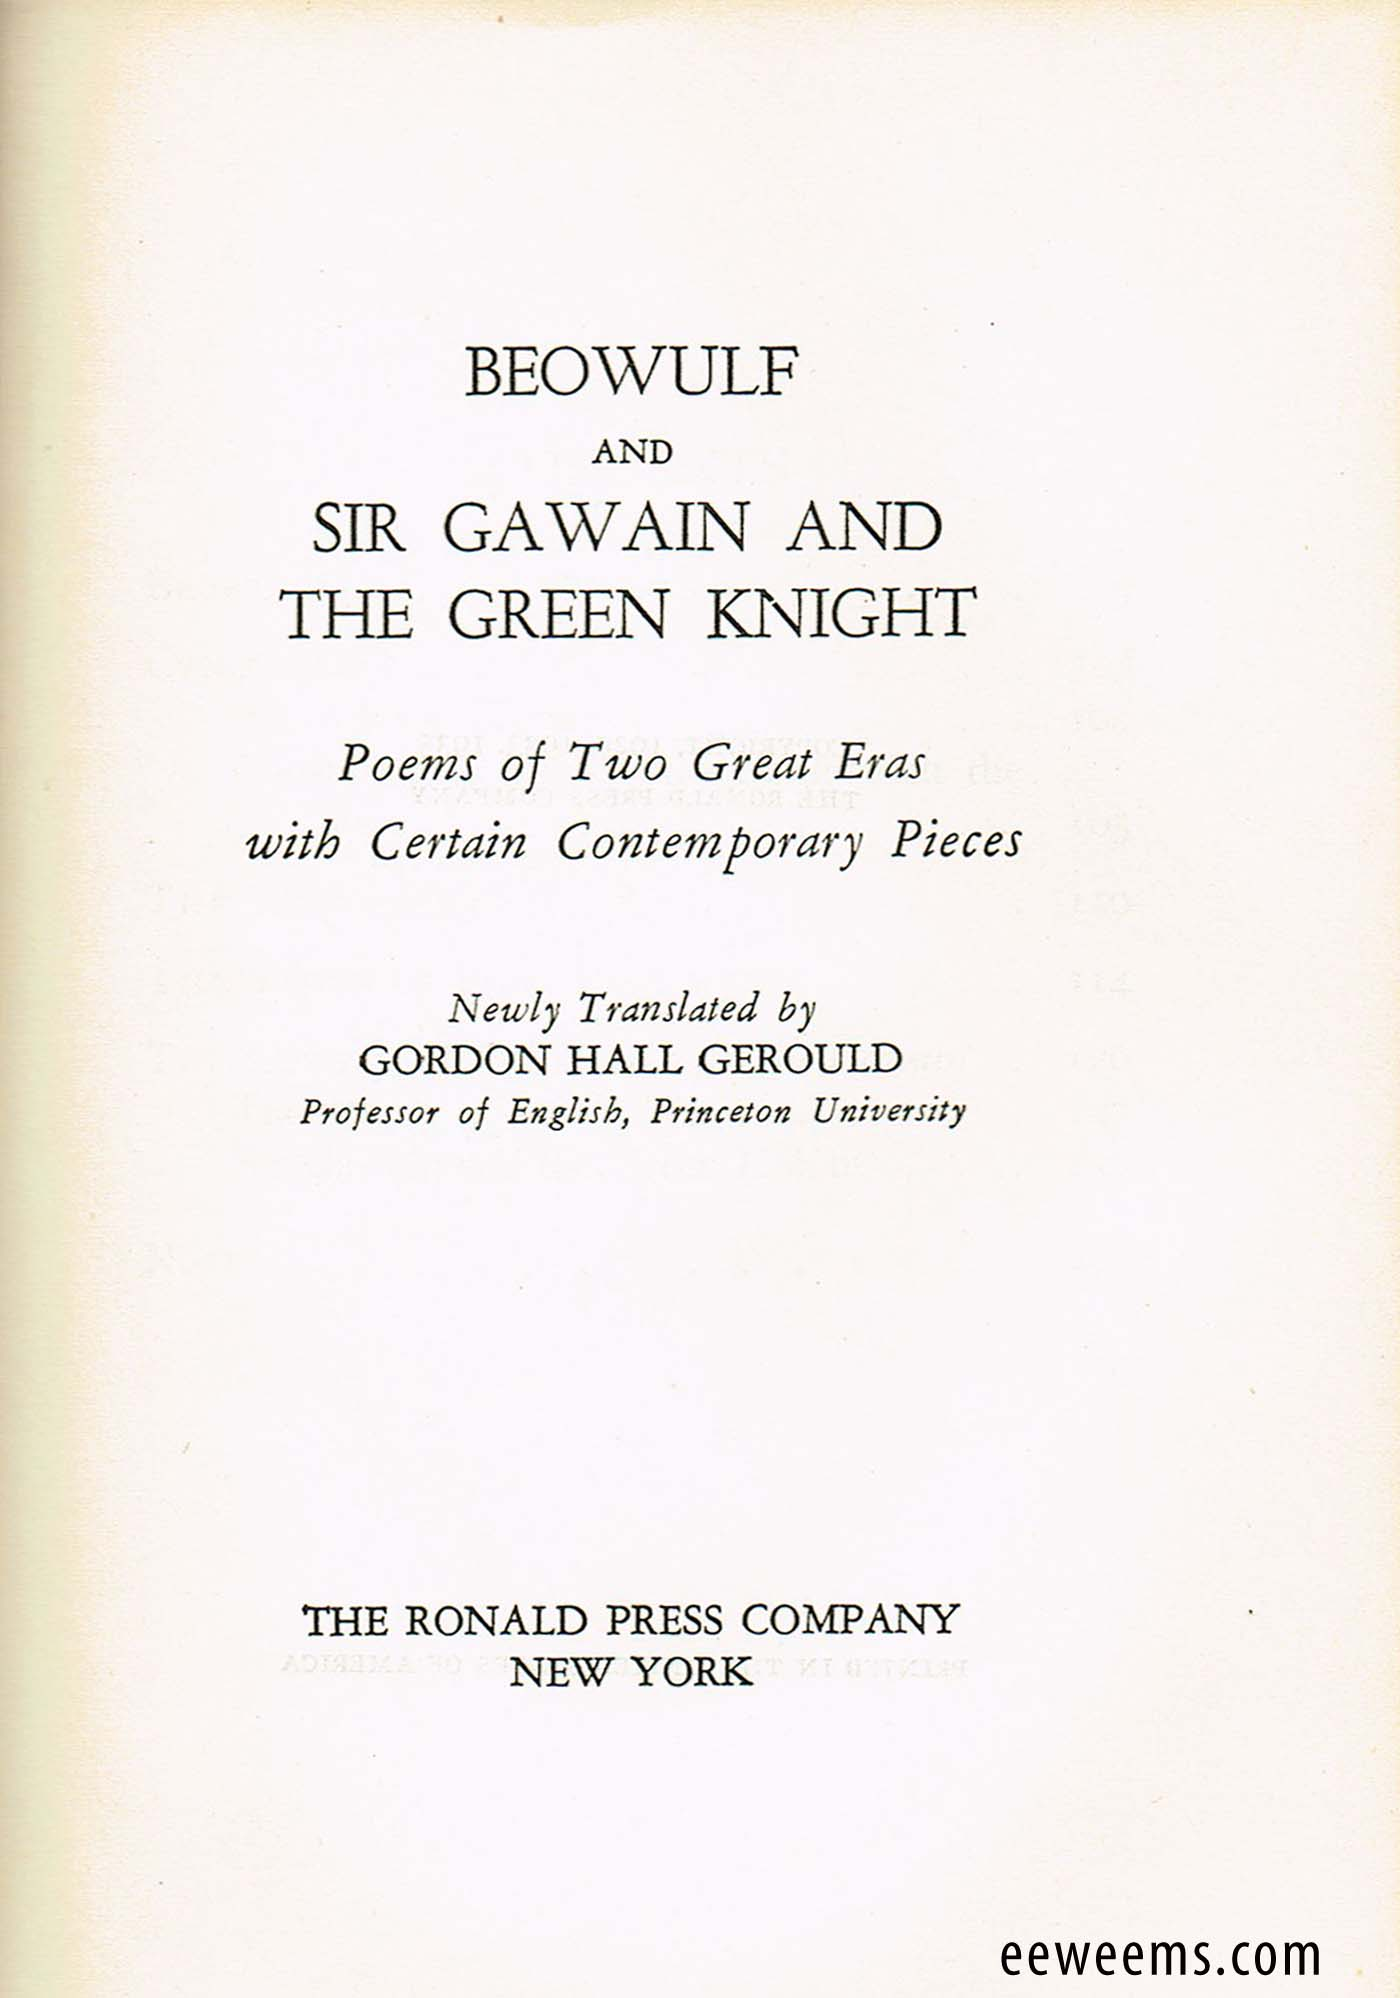 comparison contrast essay beowulf sir gawain Heroes come in many forms, yet traits such as: courage, honor, and loyalty,  reappear as themes throughout the personality of a hero the characters of  beowulf.